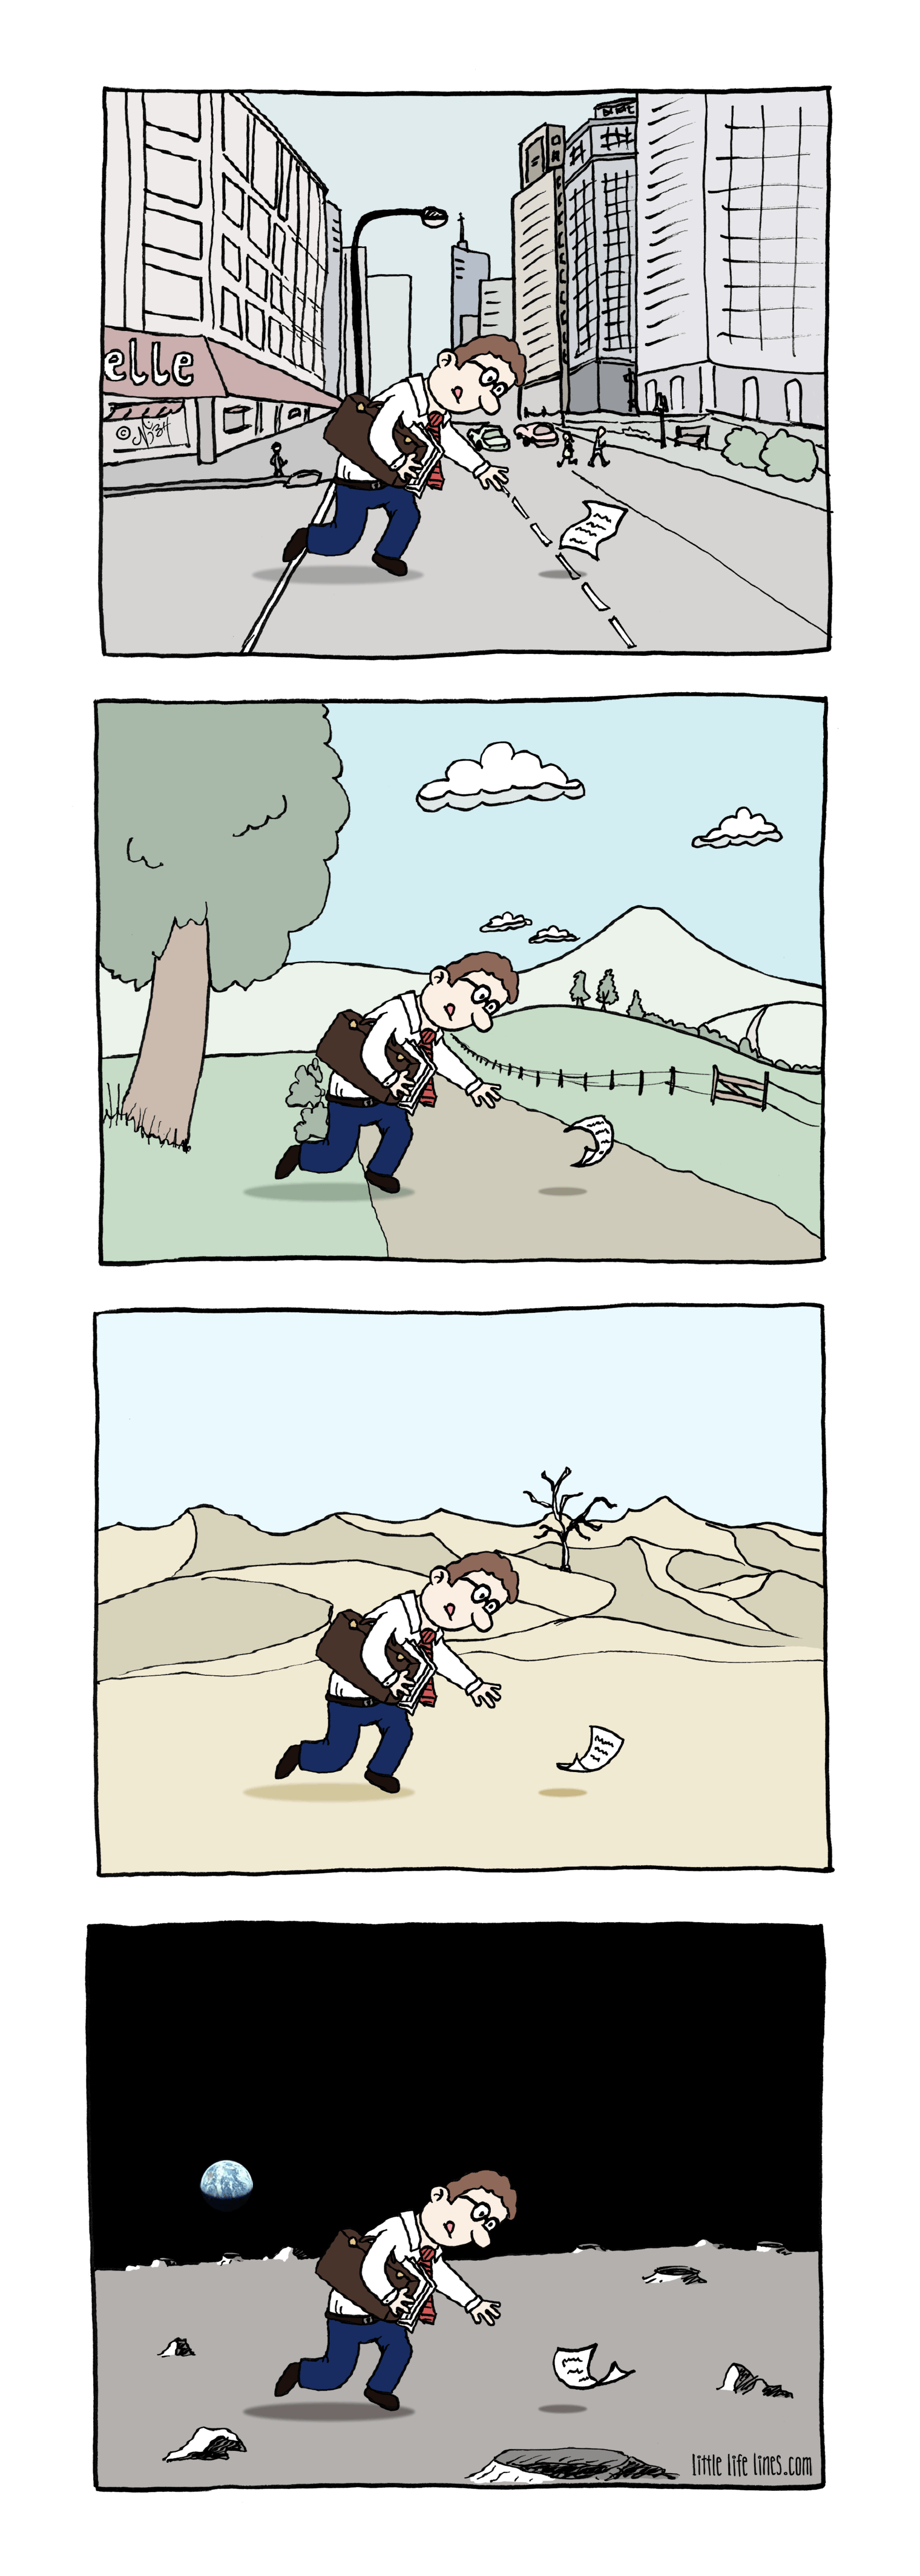 Man chasing paper in the wind